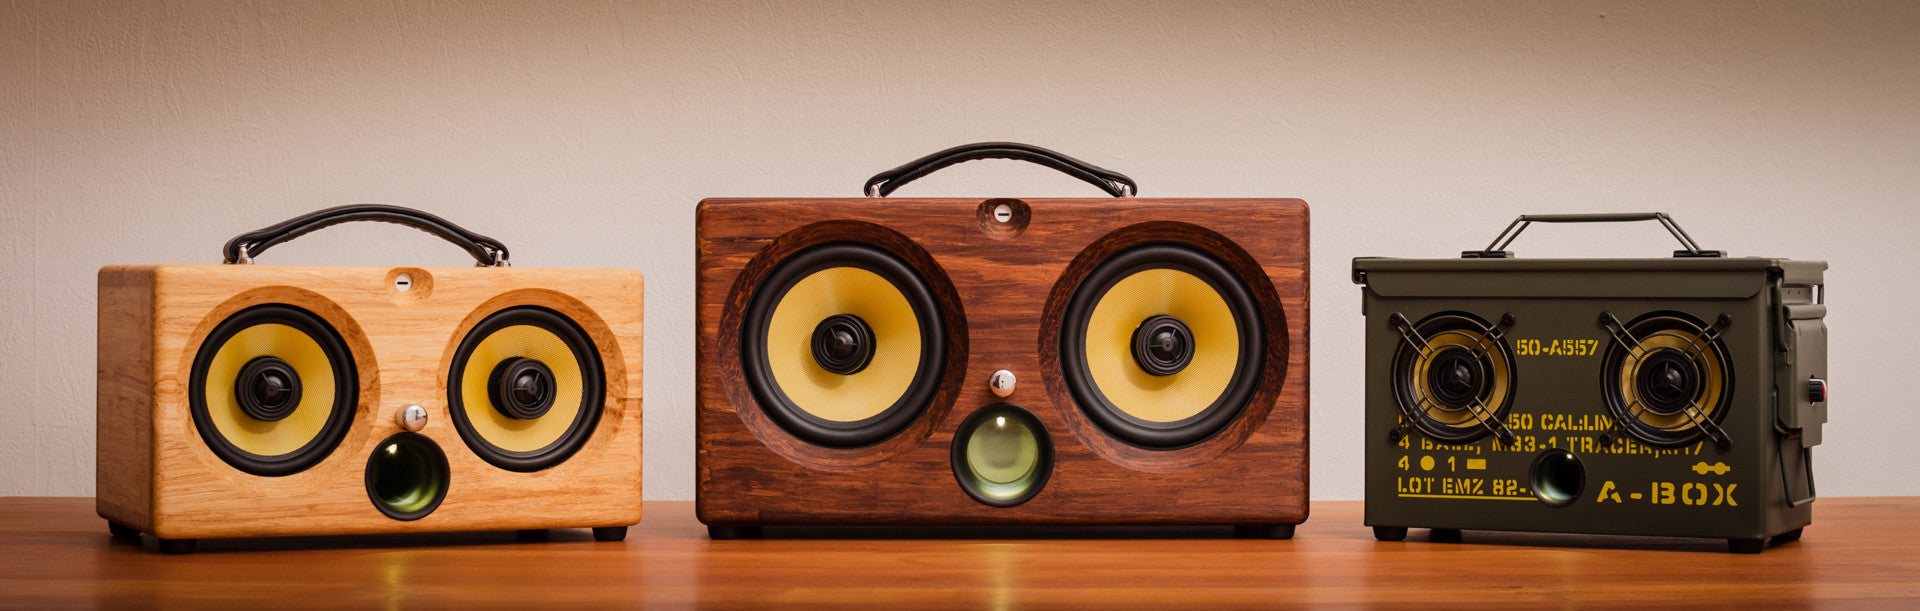 best bluetooth speakers ultimate wooden aptX bluetooth boombox airplay speaker apple dock for iphone, thodio iBox XC teak oak zebrawood beech bamboo density bamboo caramel tiger stripe bamboo wifi auris skye